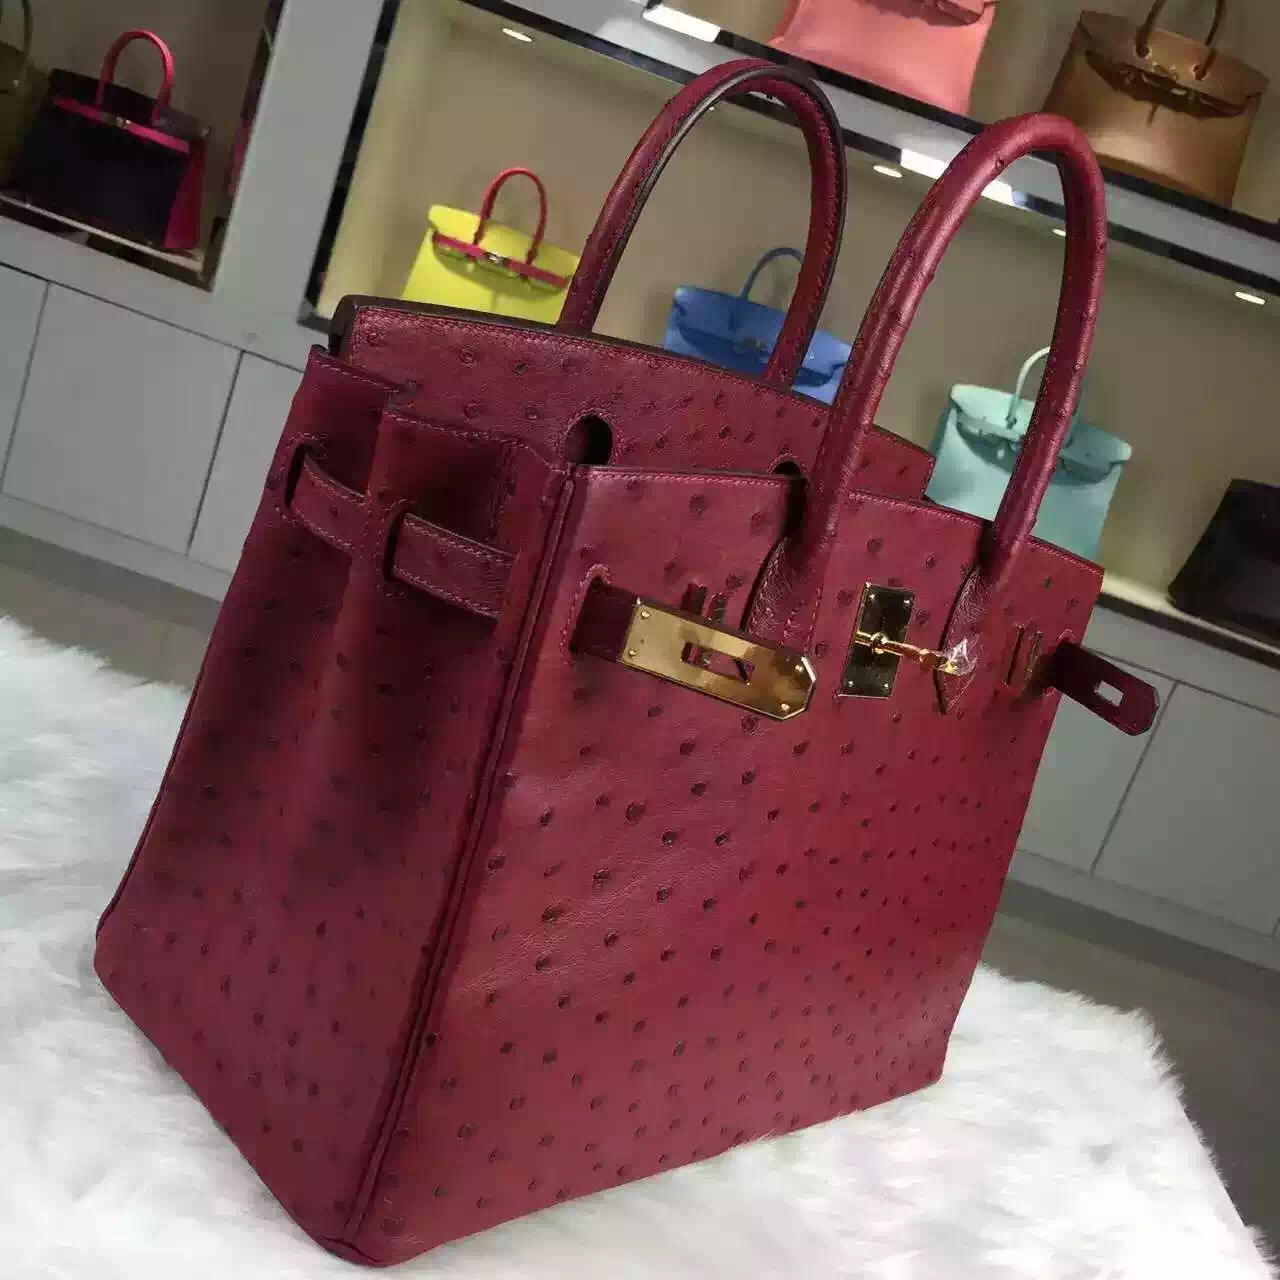 Hand Stitching Hermes France Ostrich Leather Hermes Red Birkin30CM Women's Handbag